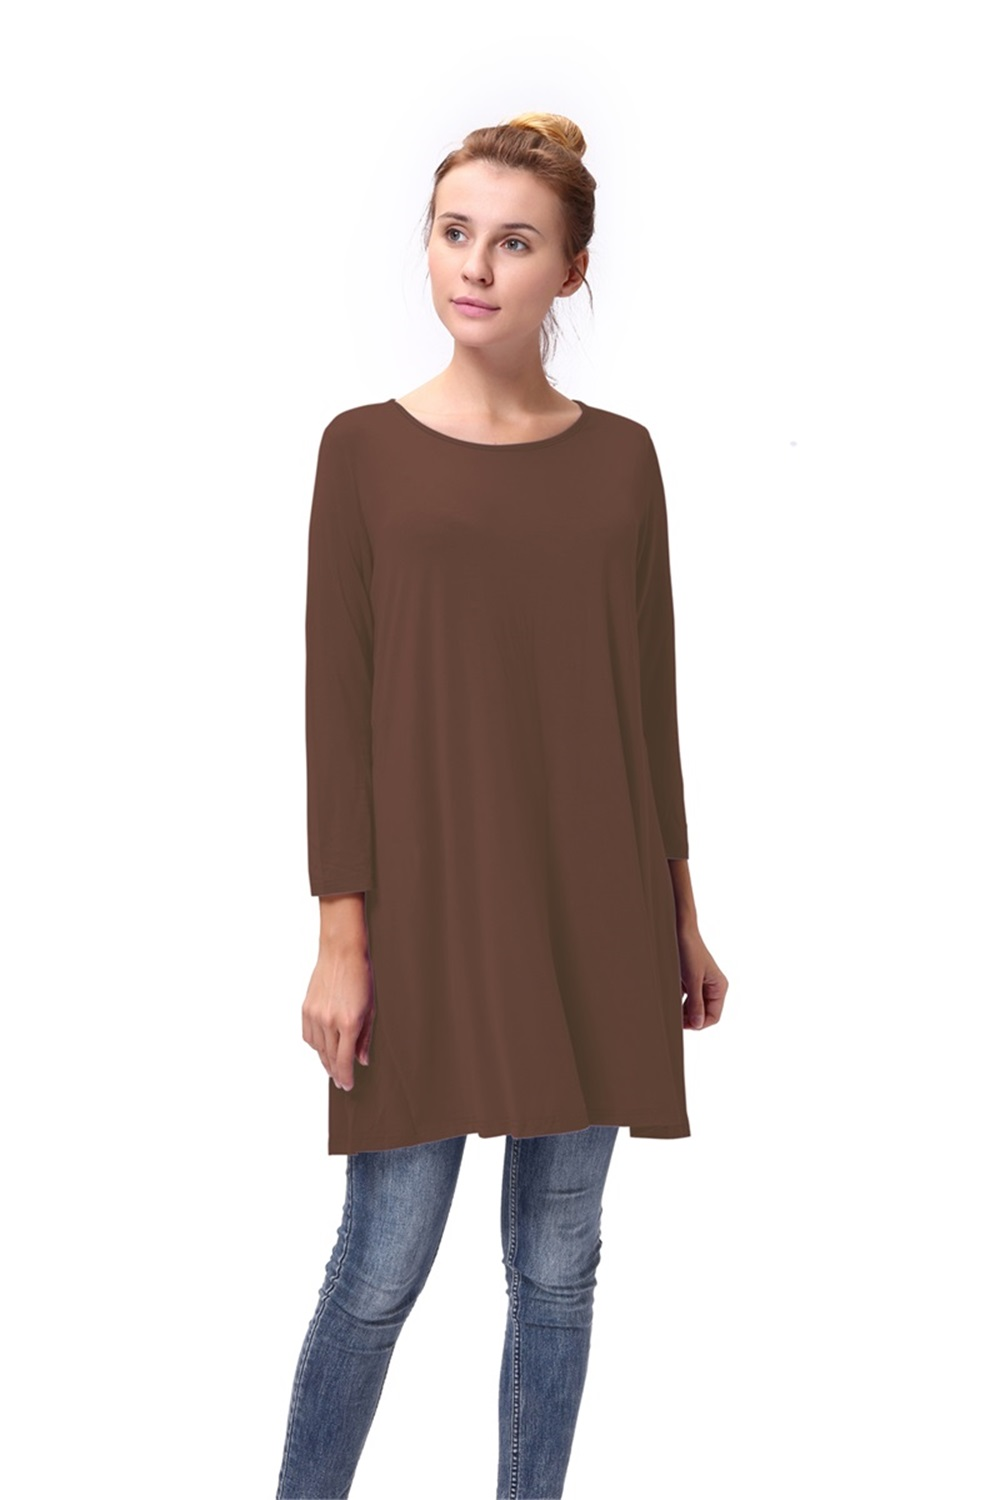 Women-039-s-Long-Tunic-Top-3-4-Sleeve-Dolman-Boat-Neck-USA-Dress-S-M-L-1X-2X-3X-PLUS thumbnail 17